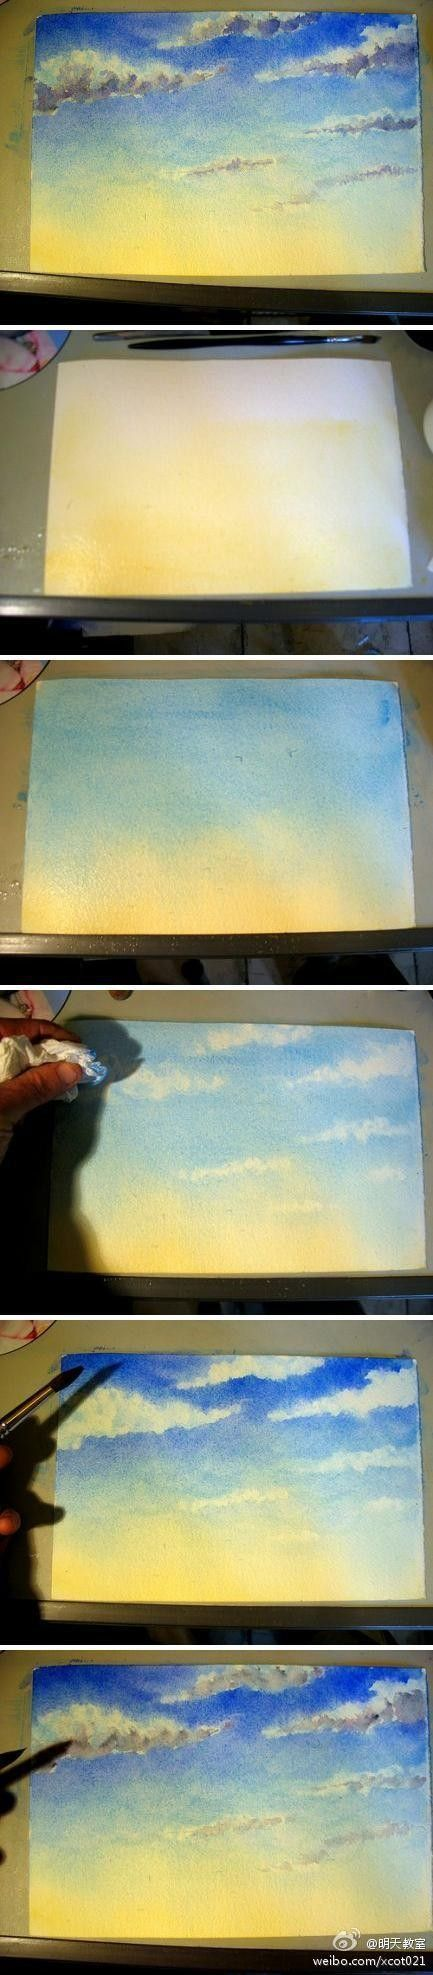 Sharing a detailed watercolor sky, step by step painting illustration.